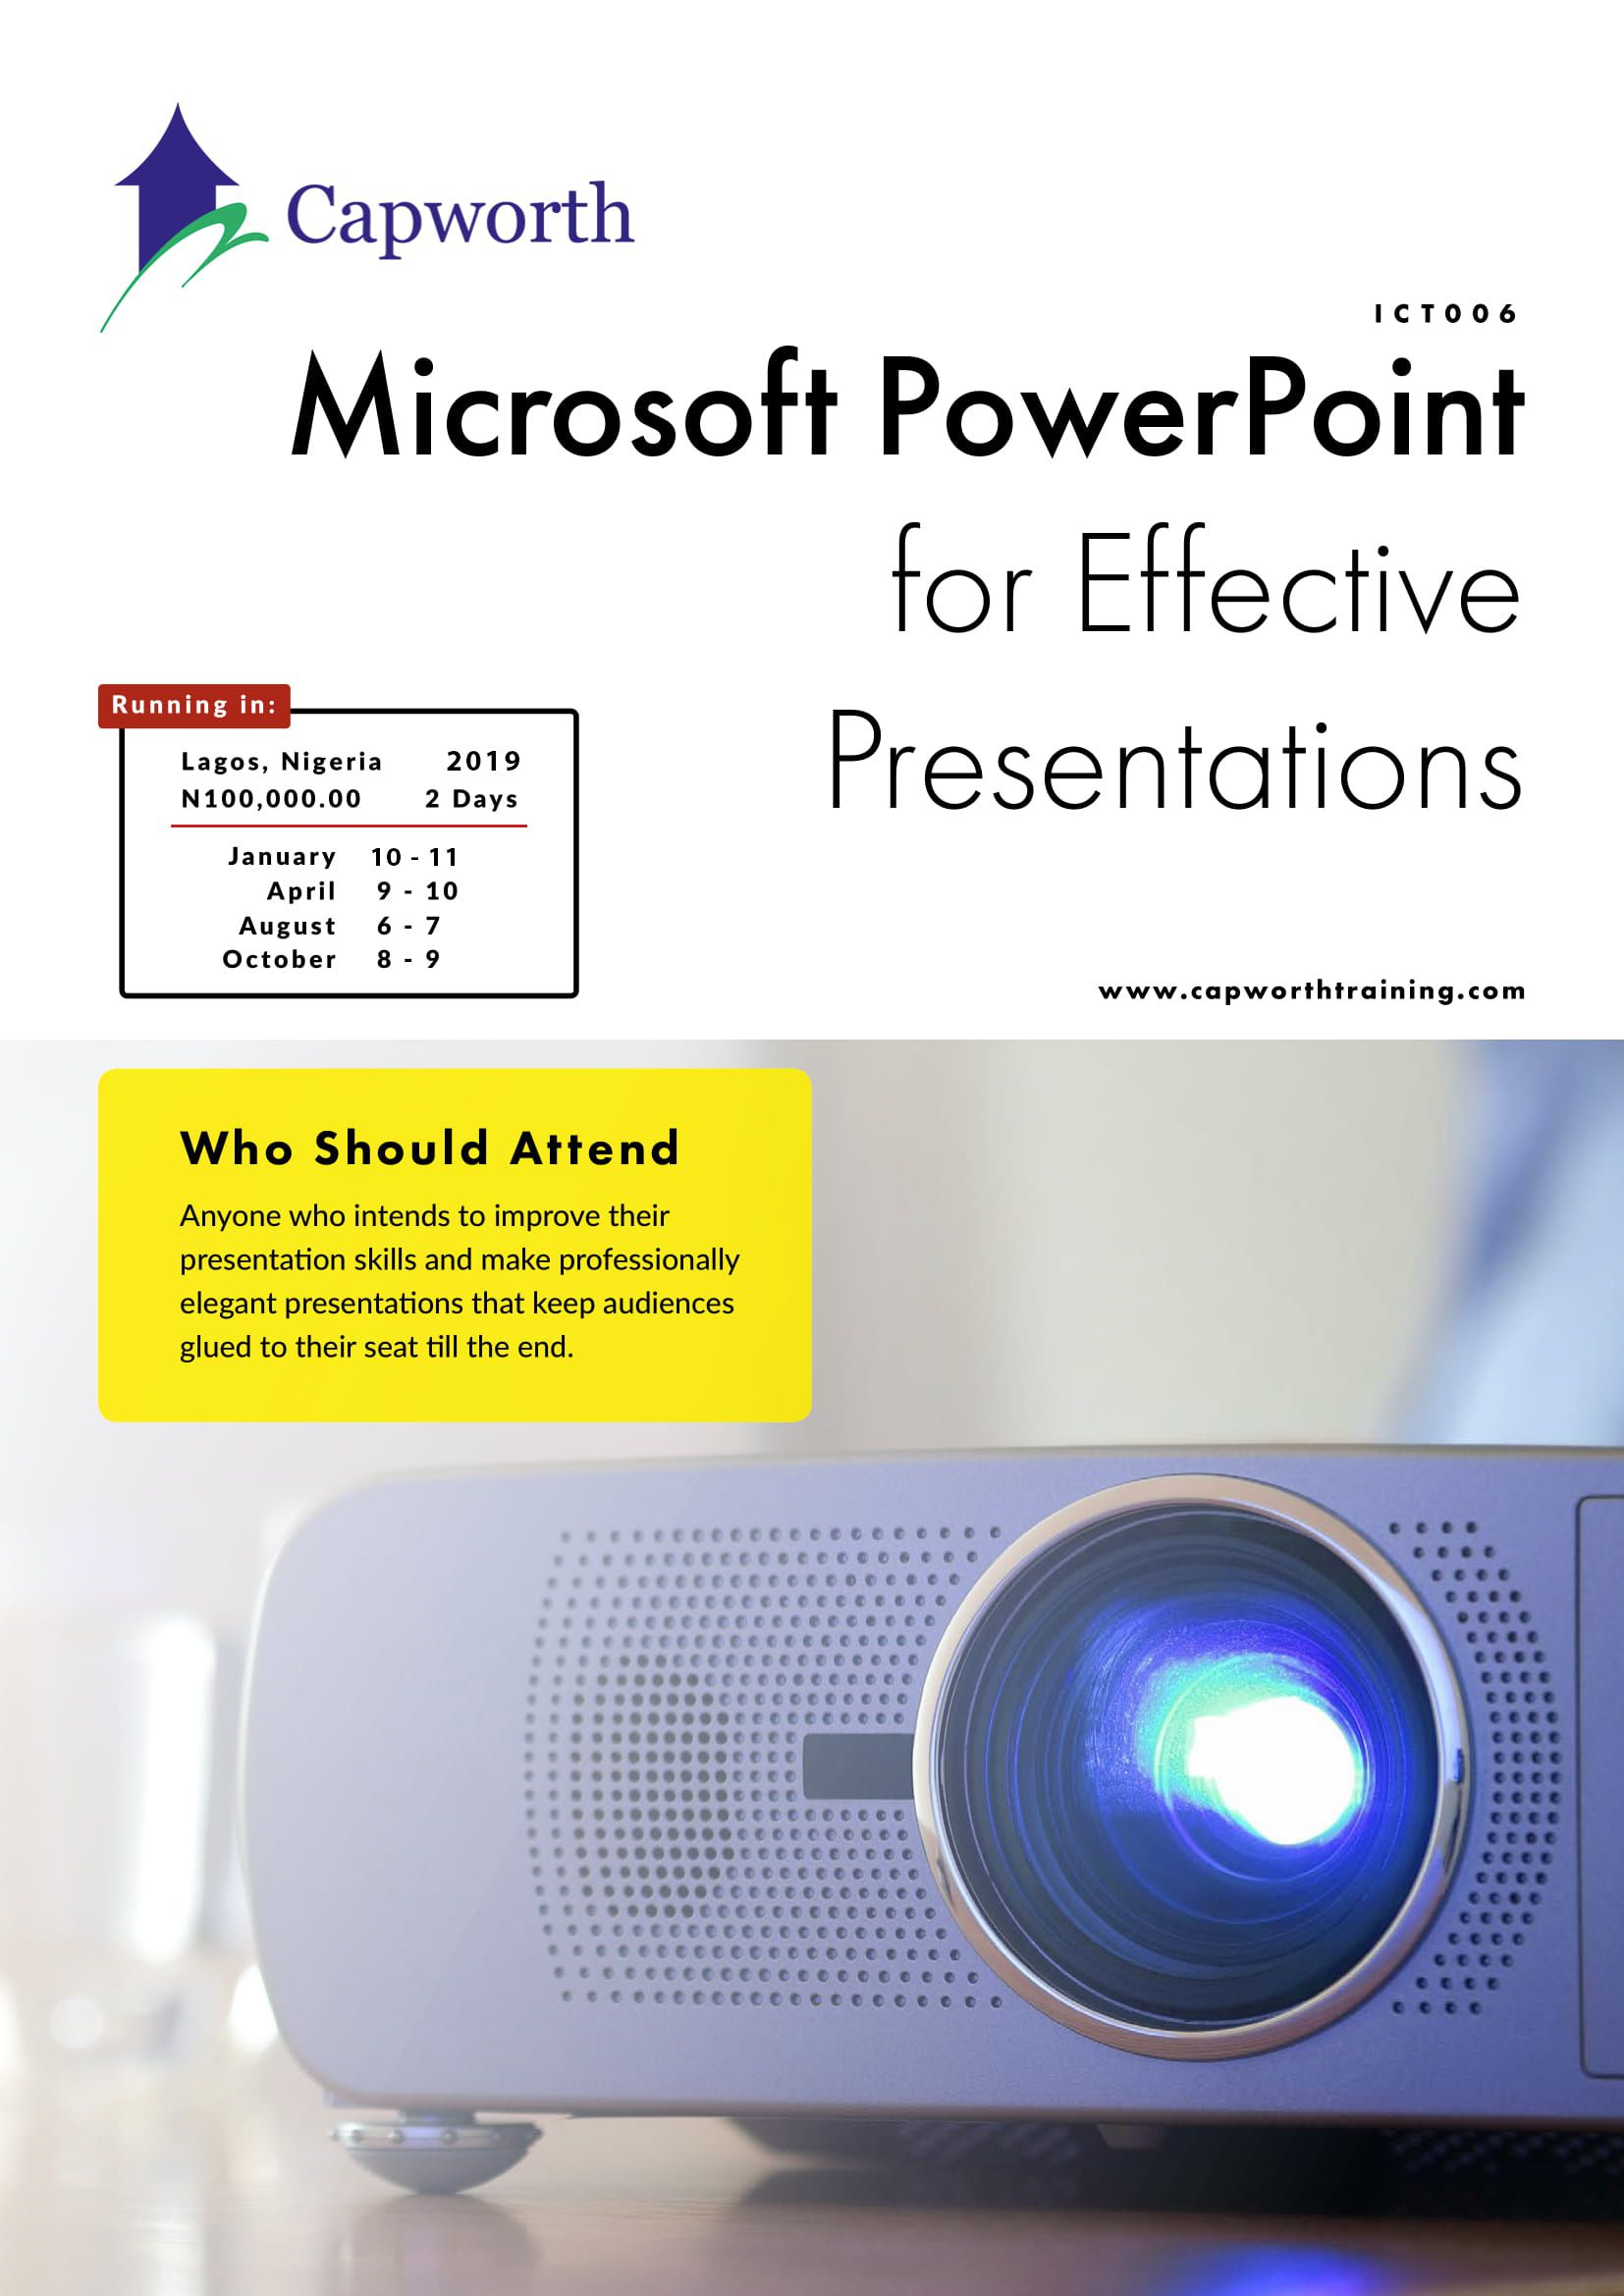 Microsoft+PowerPoint++for+Effective+Presentations+-+ICT-2_Page_1.jpg